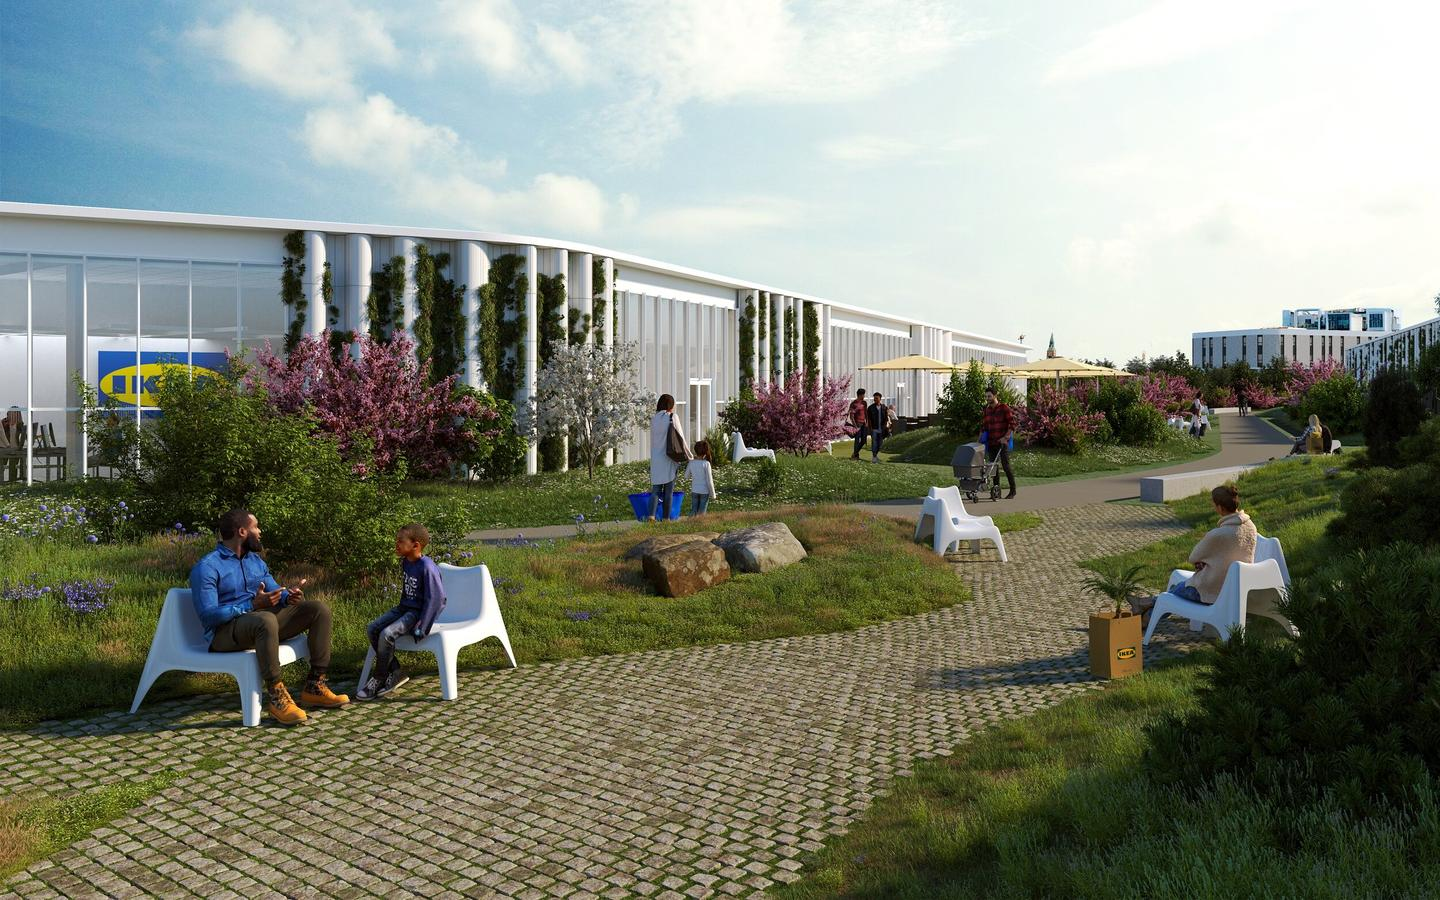 Ikea Copenhagen will feature public areas including a rooftop park and pathways, and is described as a green lounge by designer Dorte Mandrup